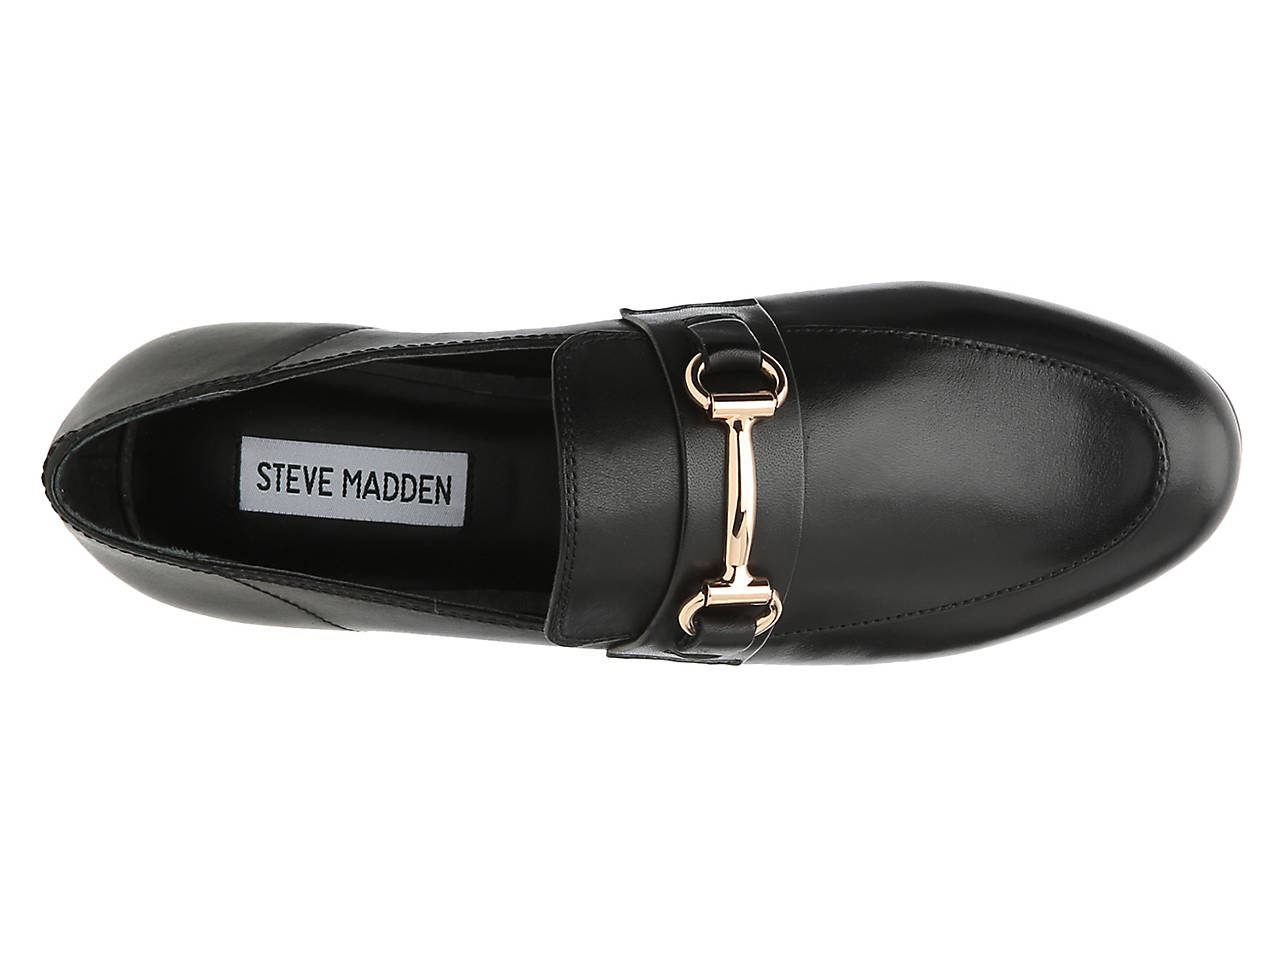 7f4df7bda9d Steve Madden Kerry Loafer Men s Shoes